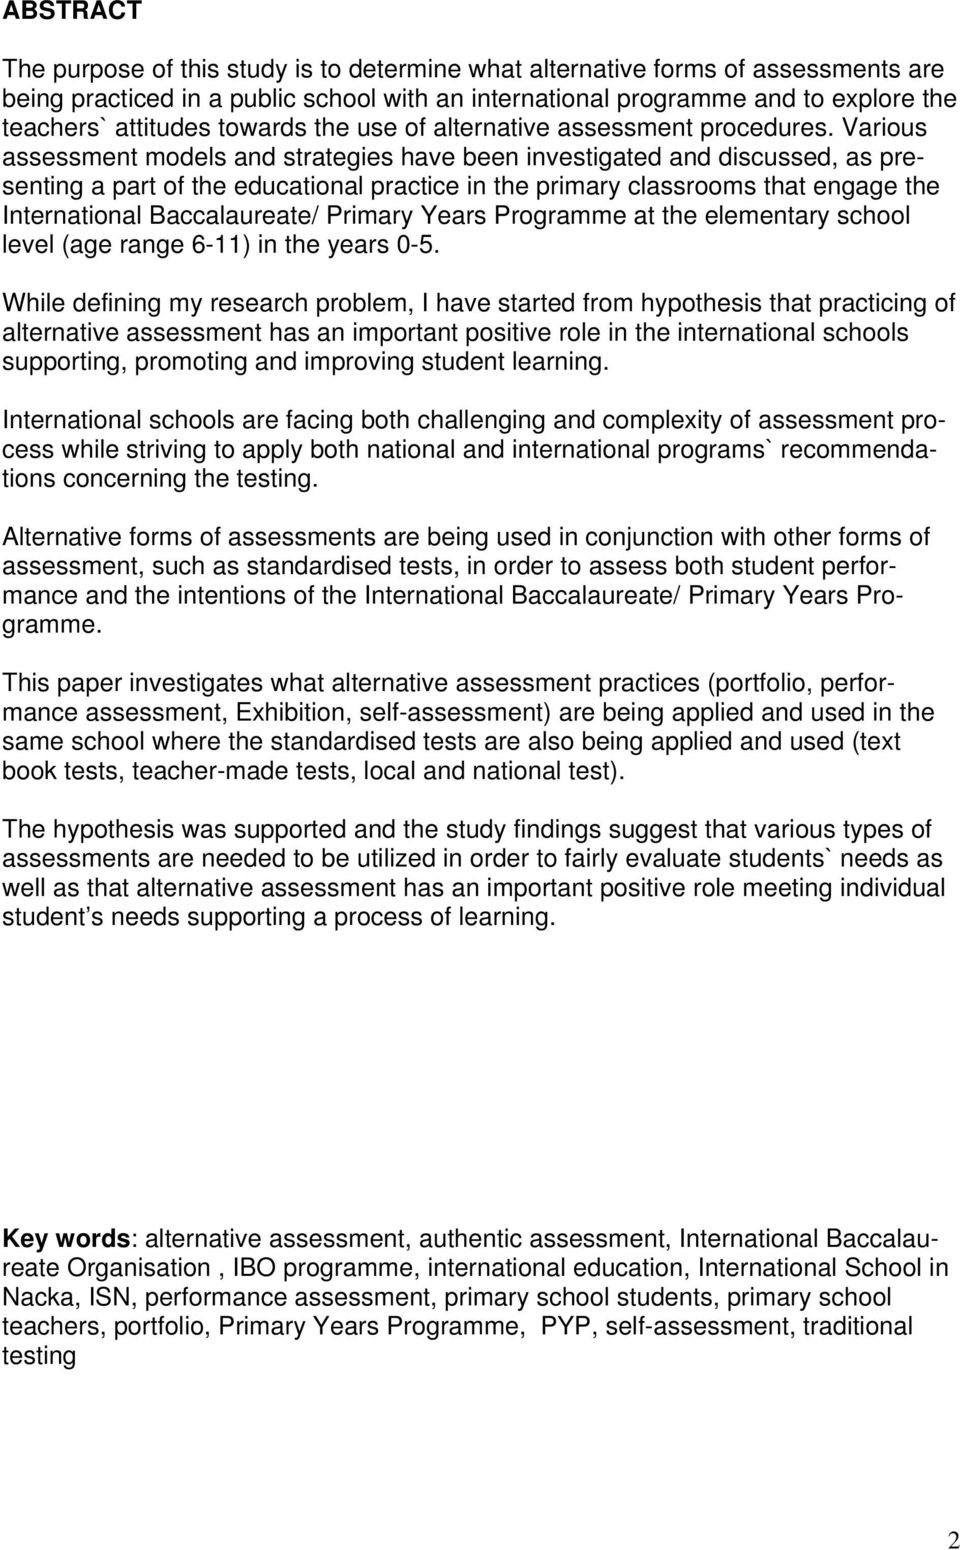 ALTERNATIVE ASSESSMENT IN PRIMARY YEARS OF INTERNATIONAL